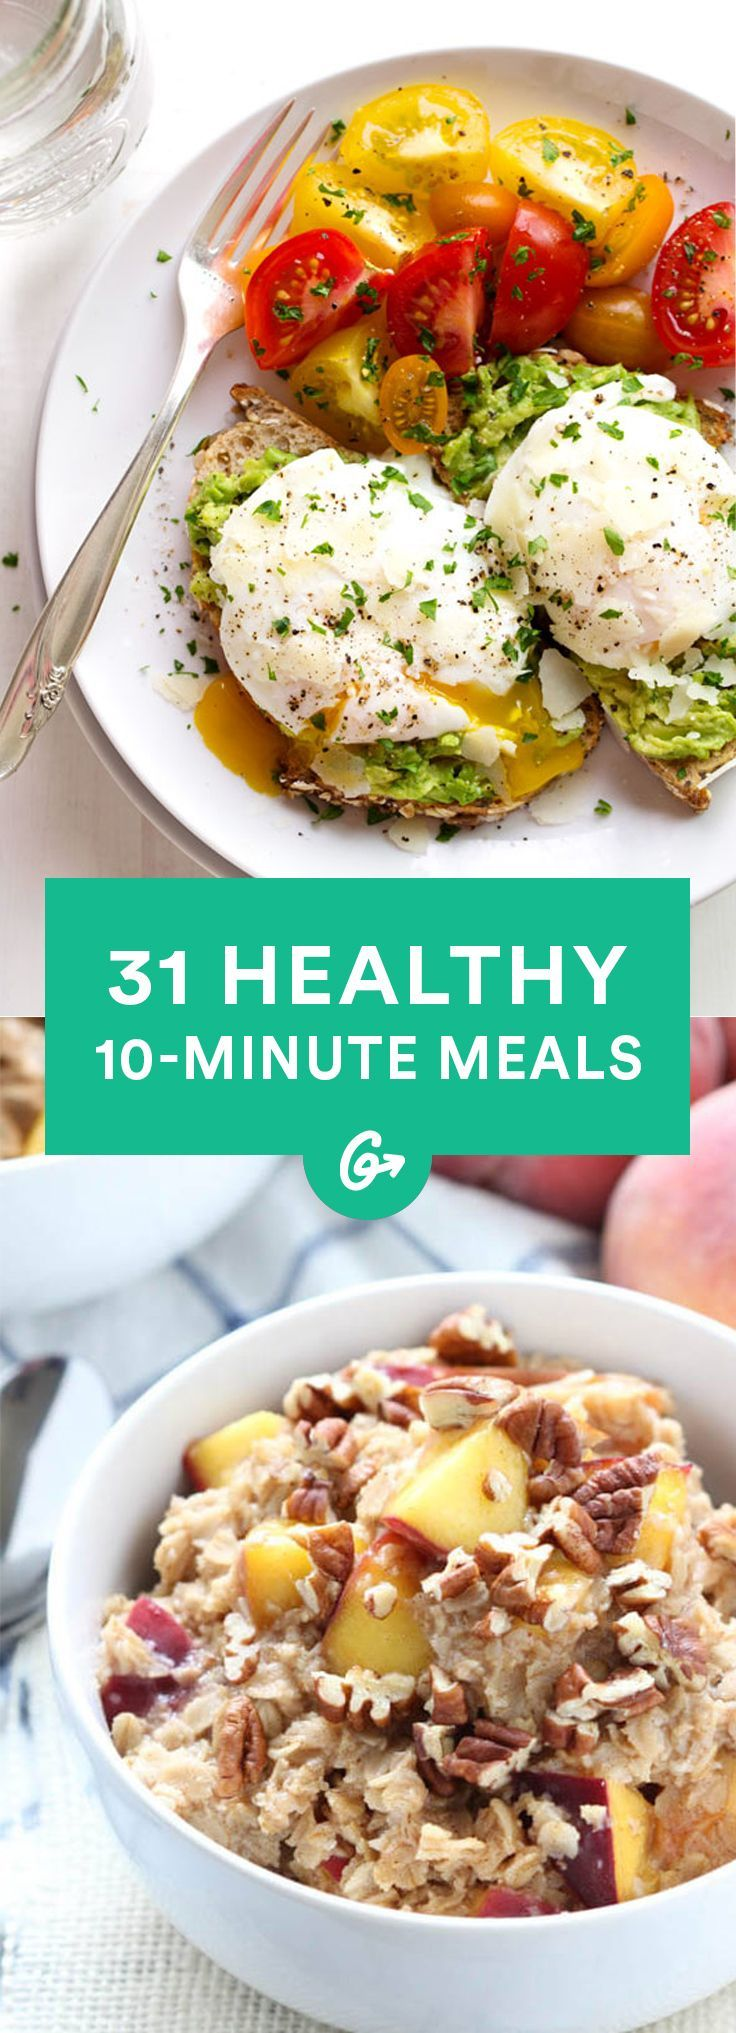 10-Minute Recipesu201429 Healthy, Fast Meals This…